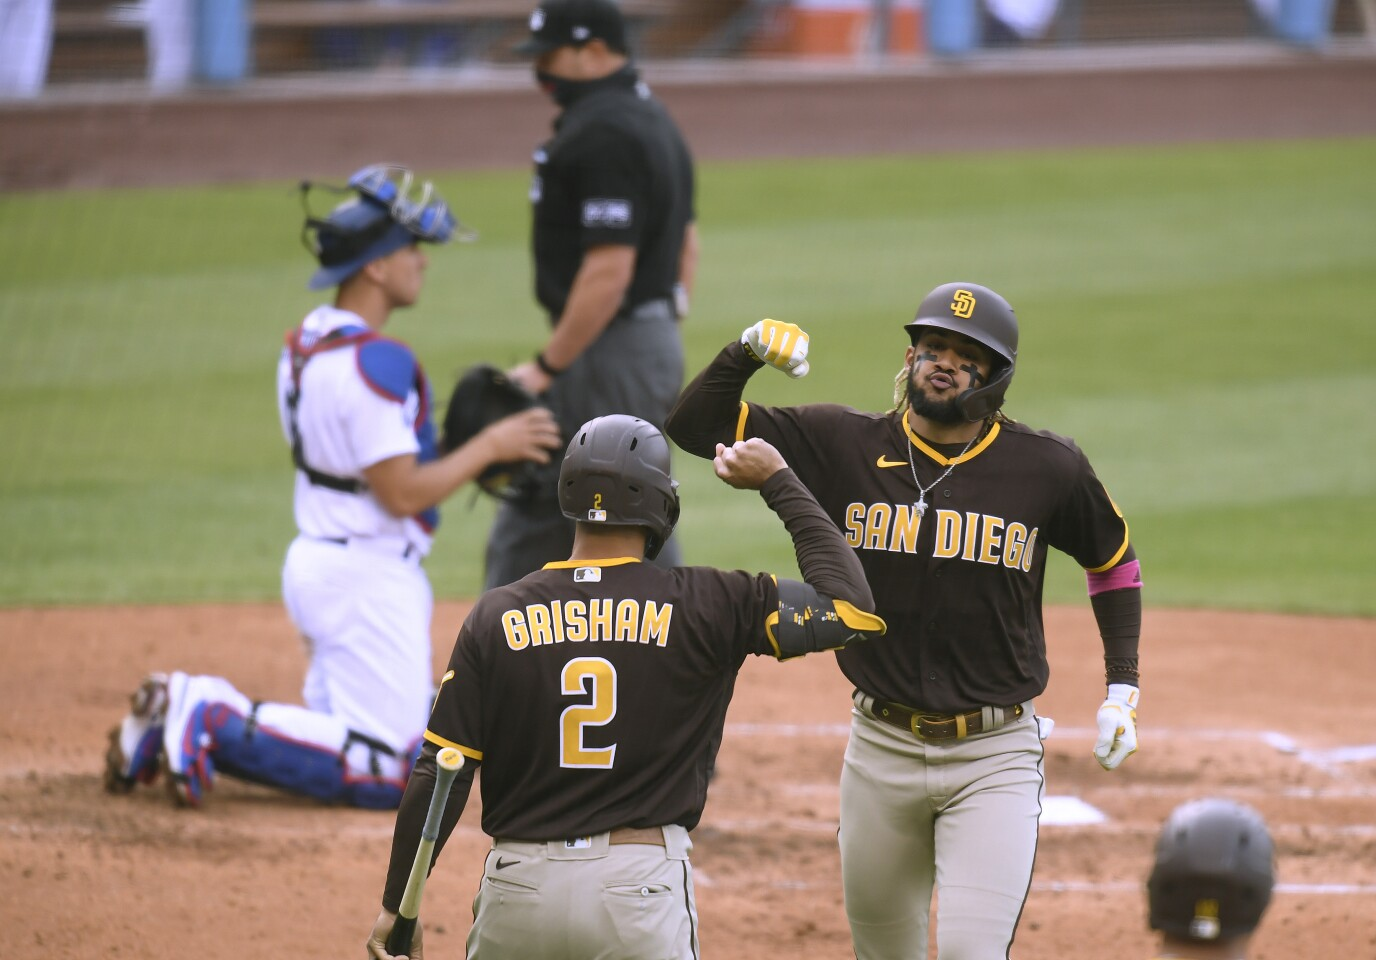 LOS ANGELES, CALIFORNIA - APRIL 25: Fernando Tatis Jr. #23 of the San Diego Padres celebrates his solo homerun with Trent Grisham #2, to trail 2-1 to the Los Angeles Dodgers, during the fourth inning at Dodger Stadium on April 25, 2021 in Los Angeles, California. (Photo by Harry How/Getty Images)